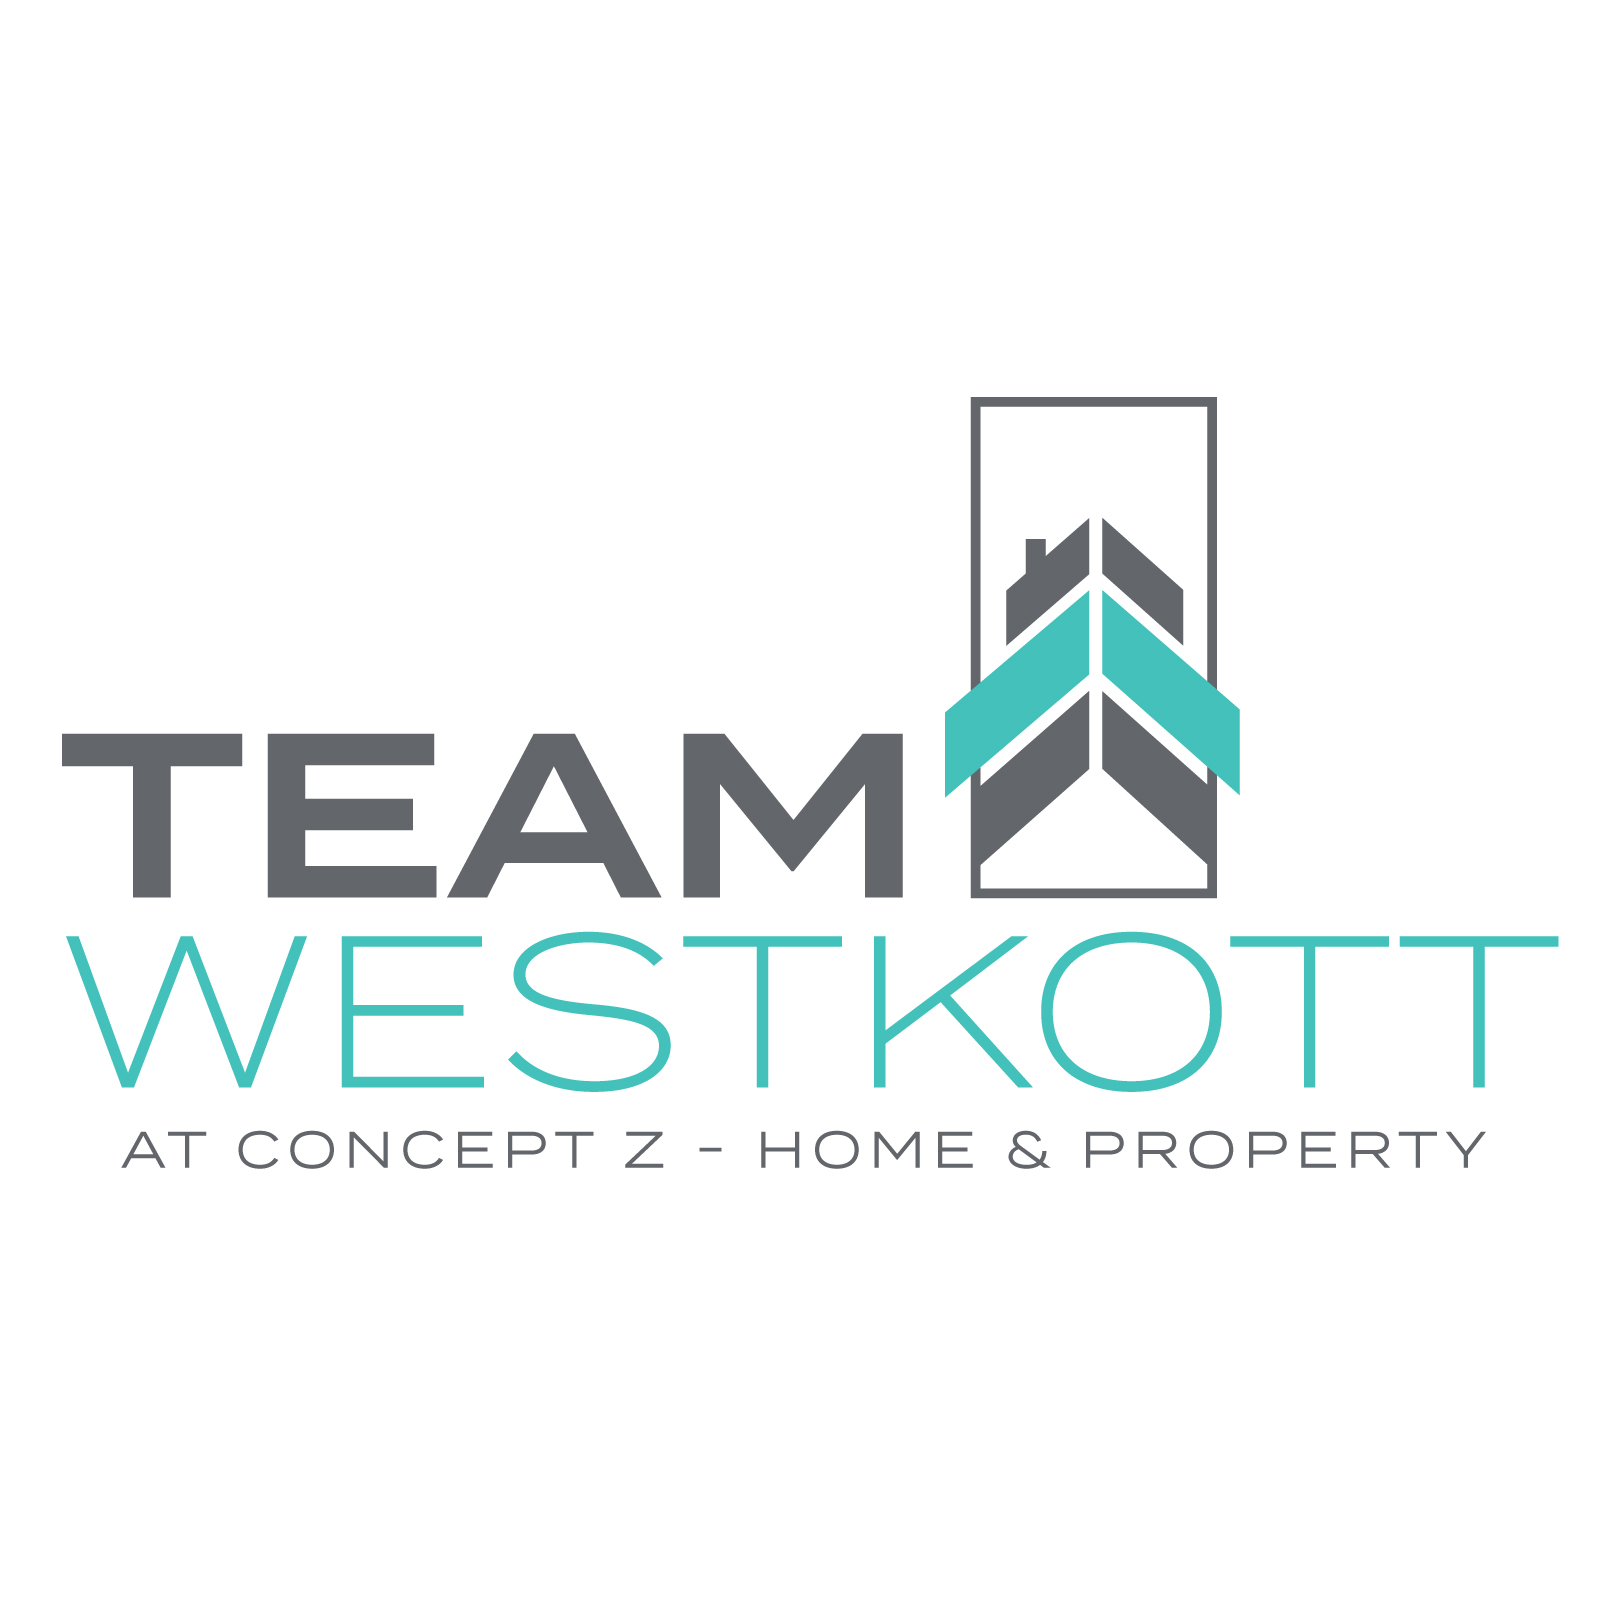 Team Westkott at Concept Z branding